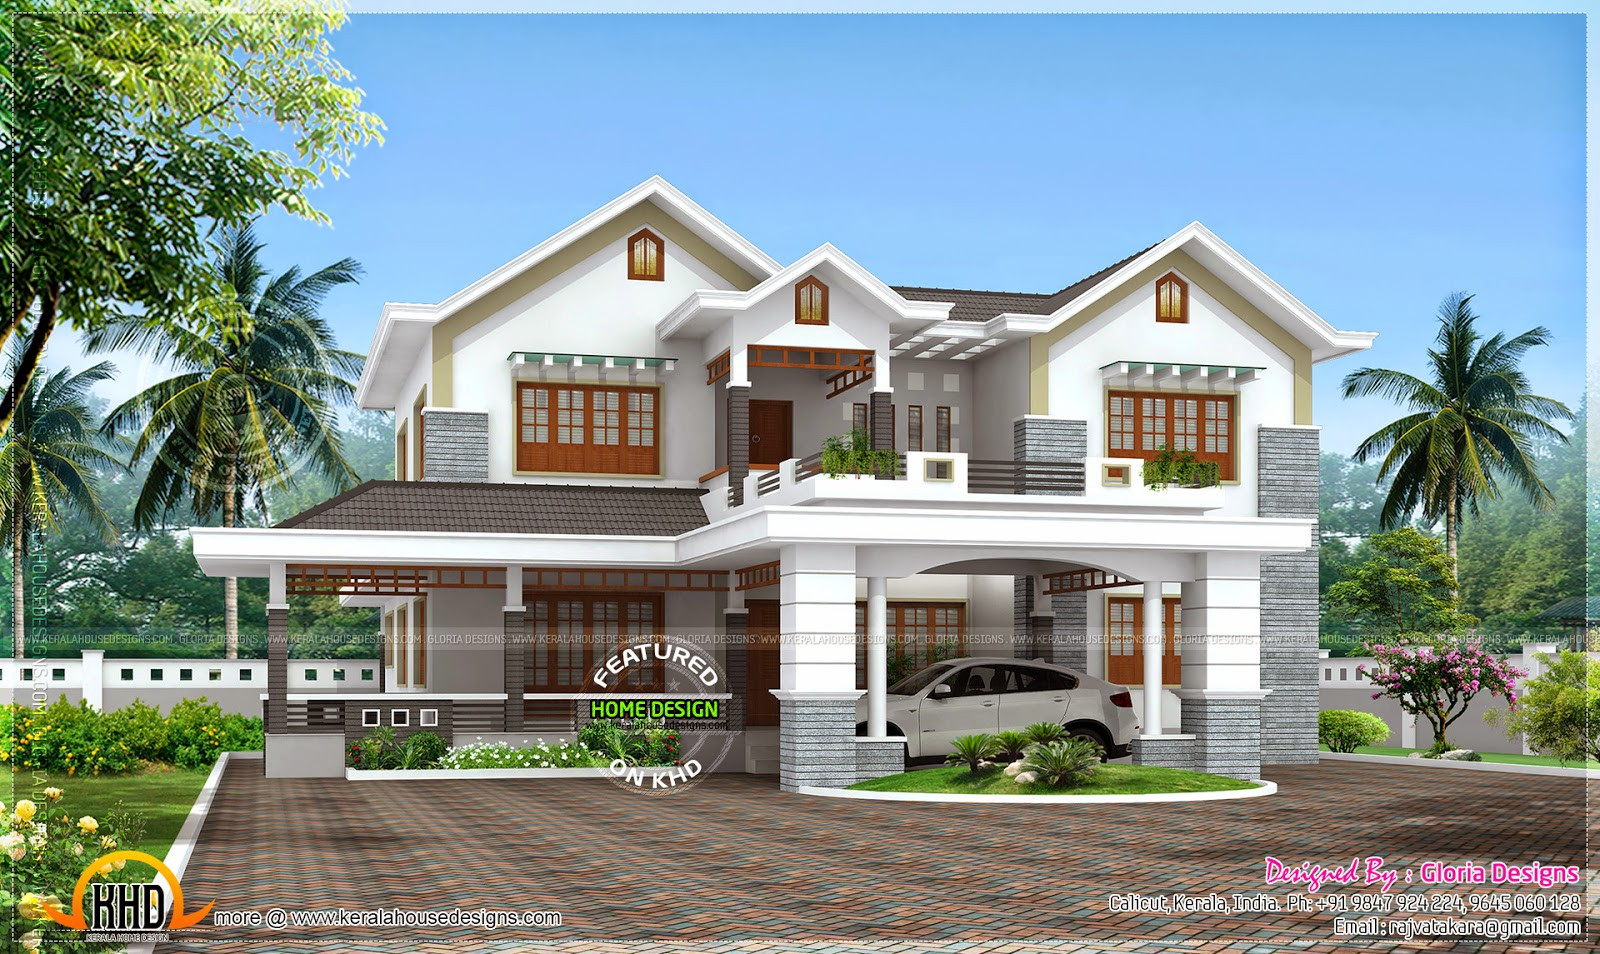 Beautiful 4 bedroom modern house kerala home design and for Beautiful kerala house plans